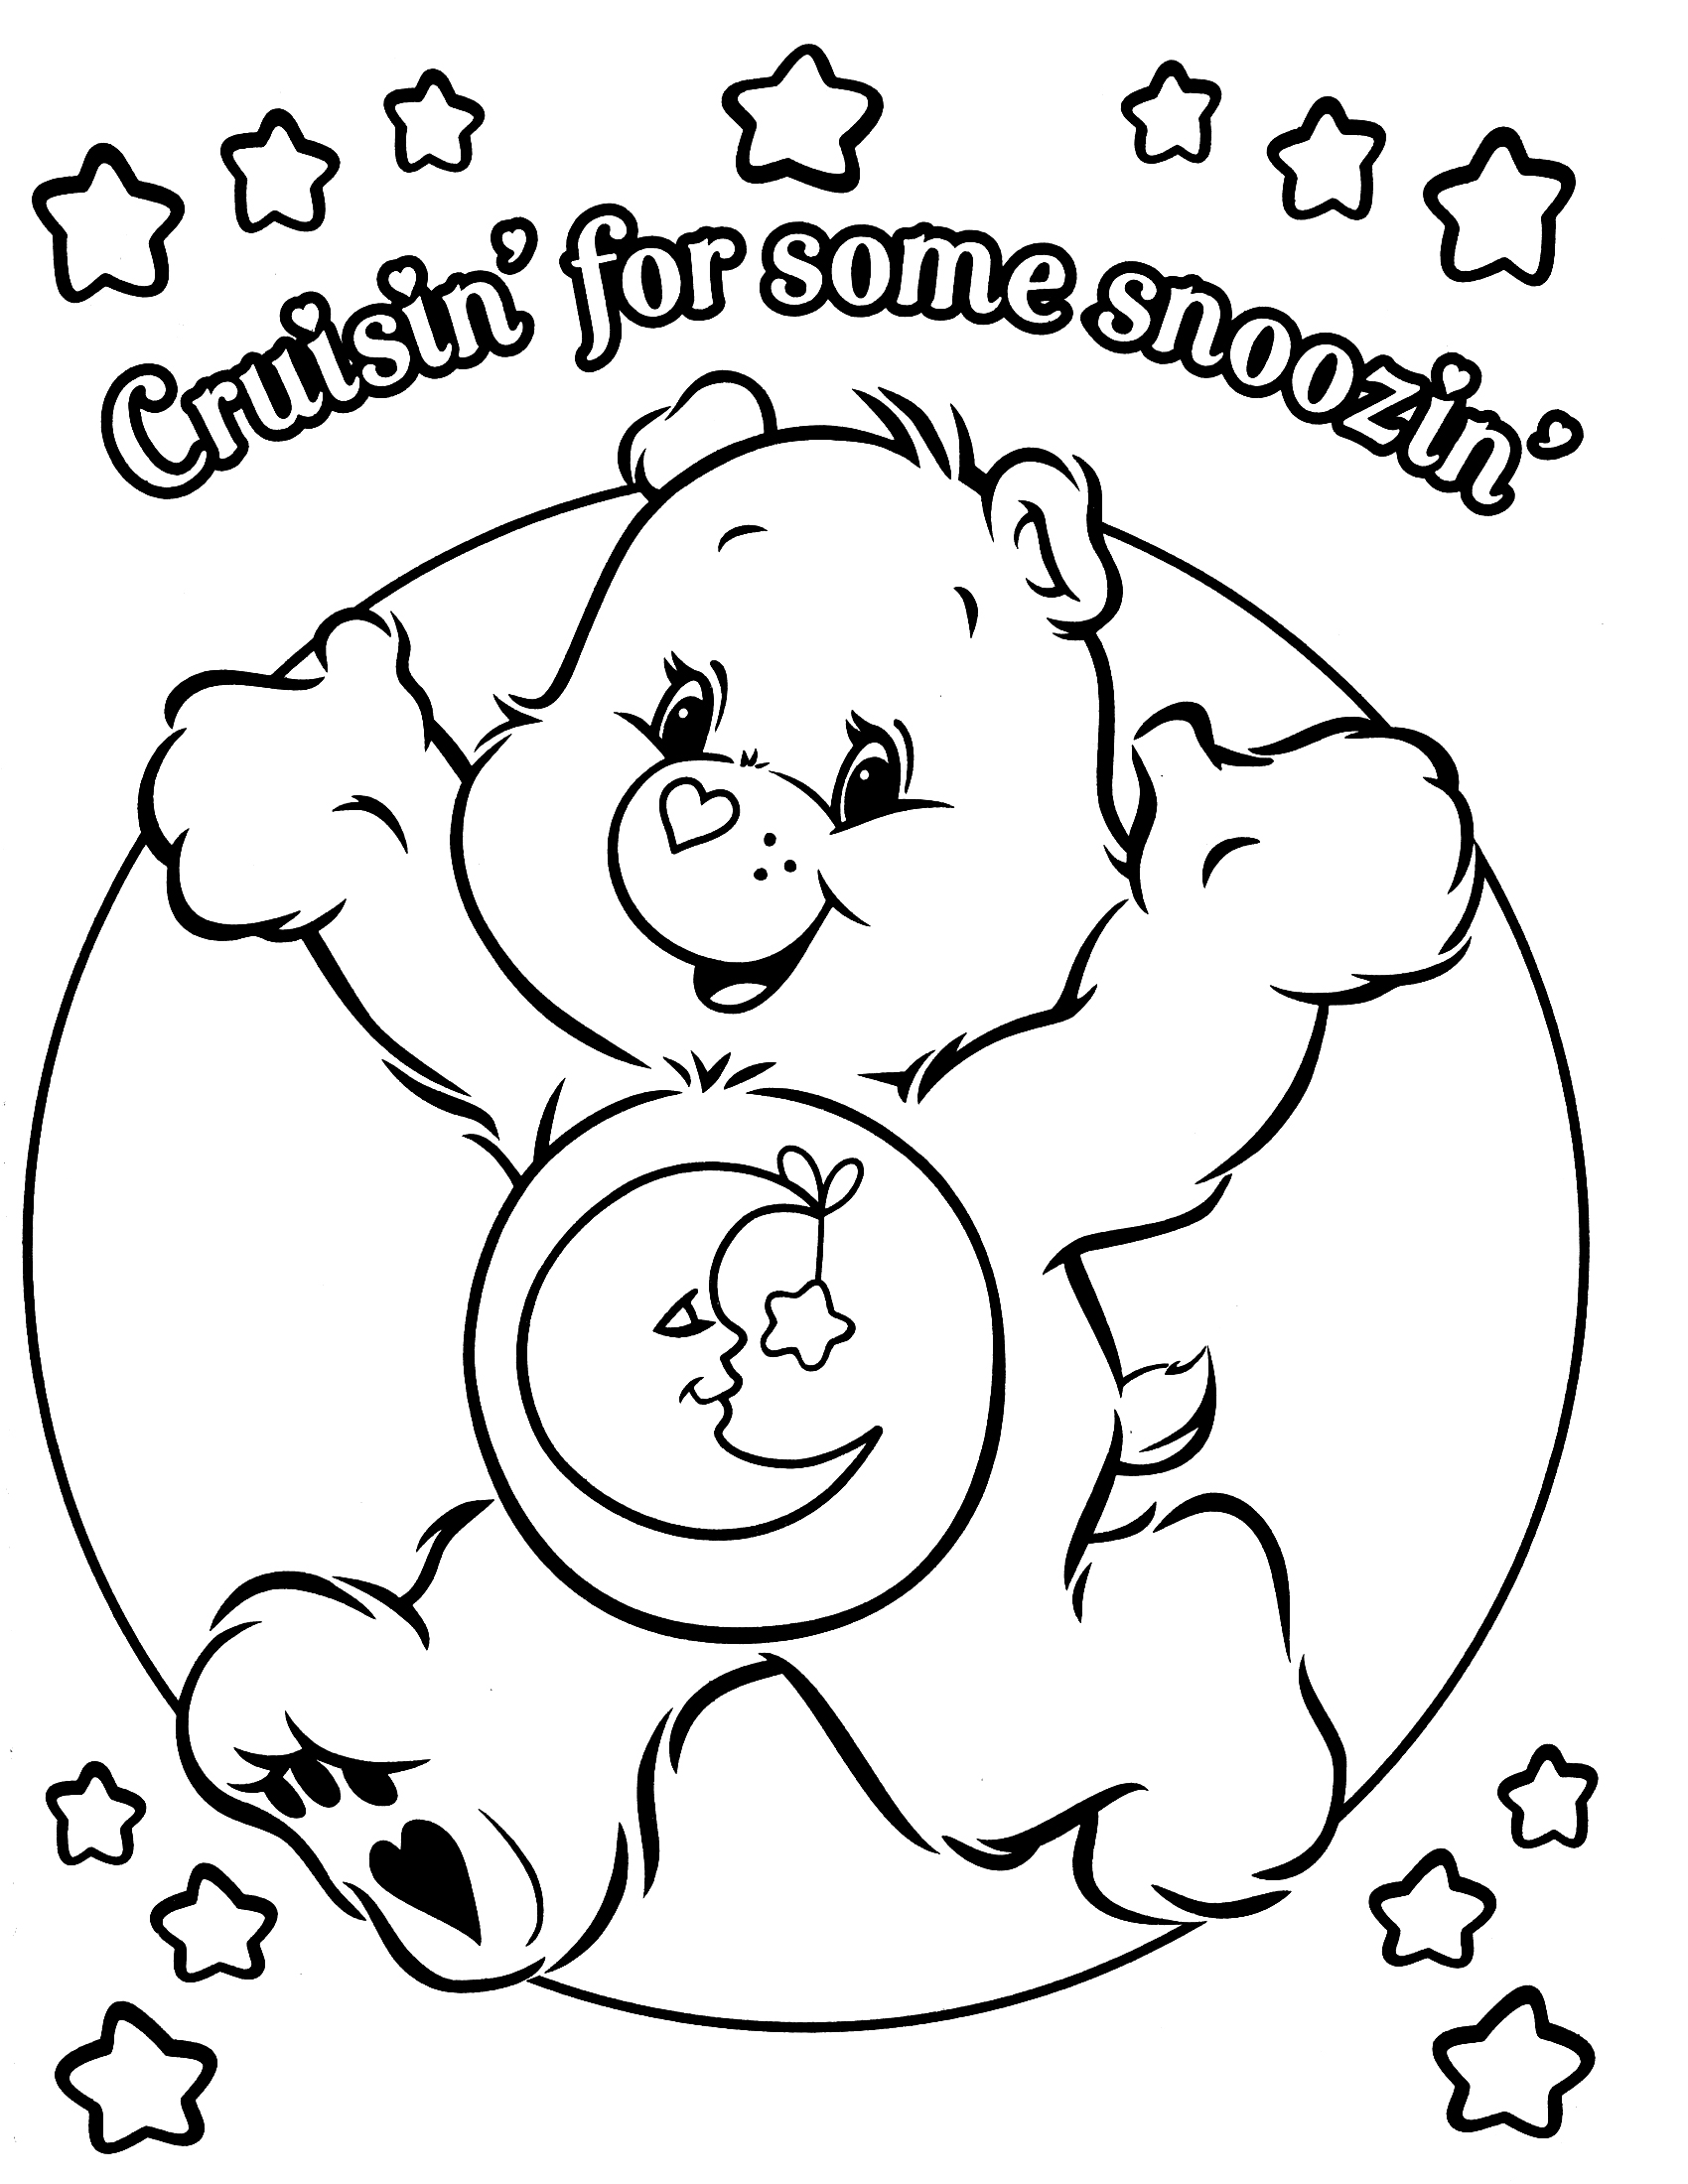 Care bear coloring pages to download